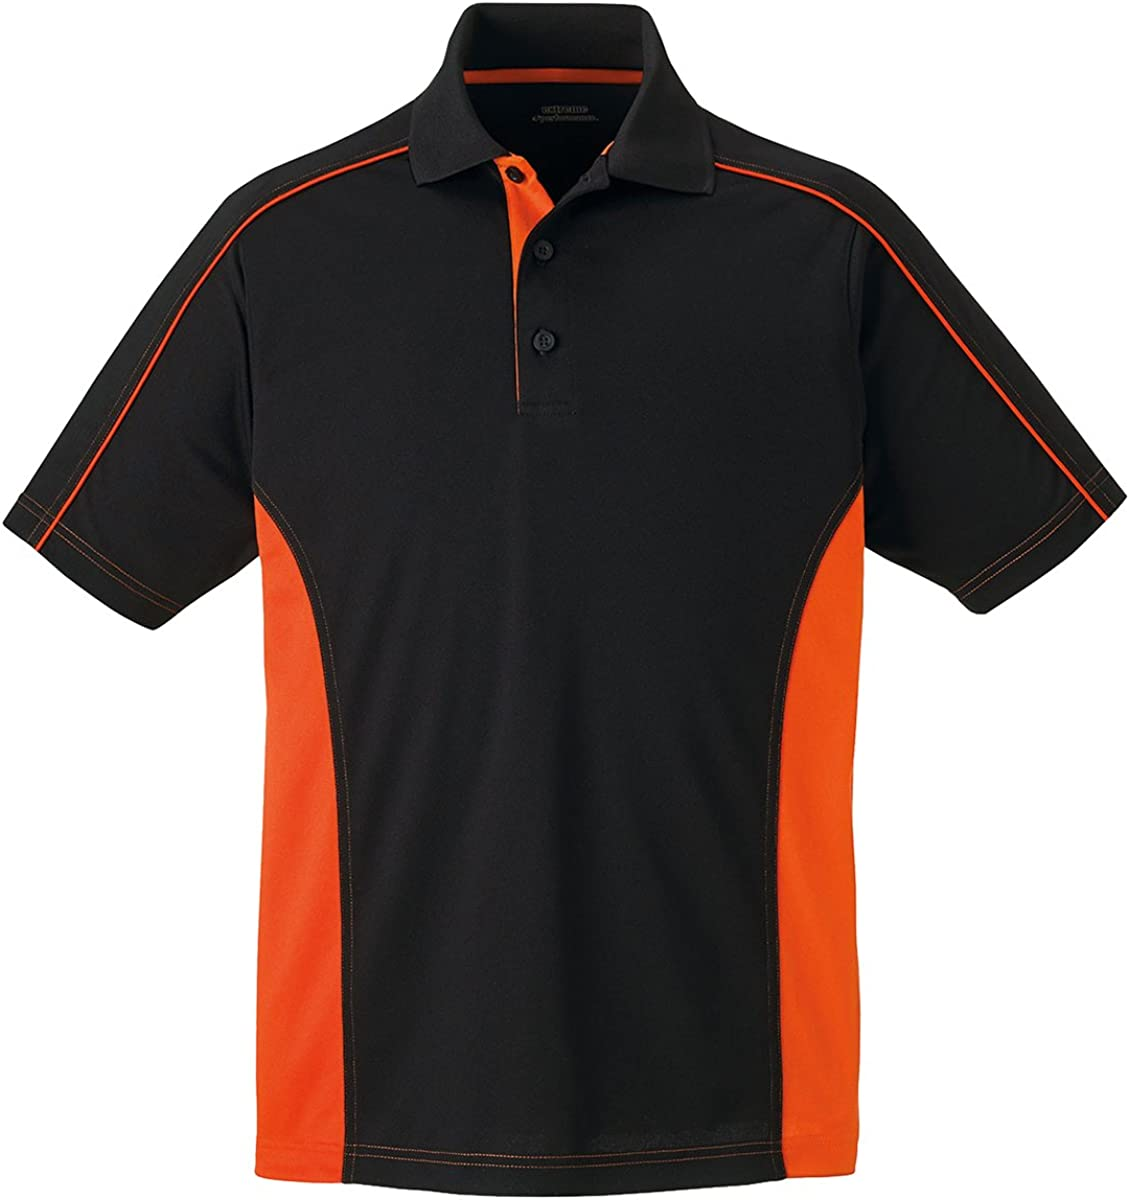 Ash City Extreme Polos Snag Protection Plus Color-Block Polos 85113 -Classic NA M